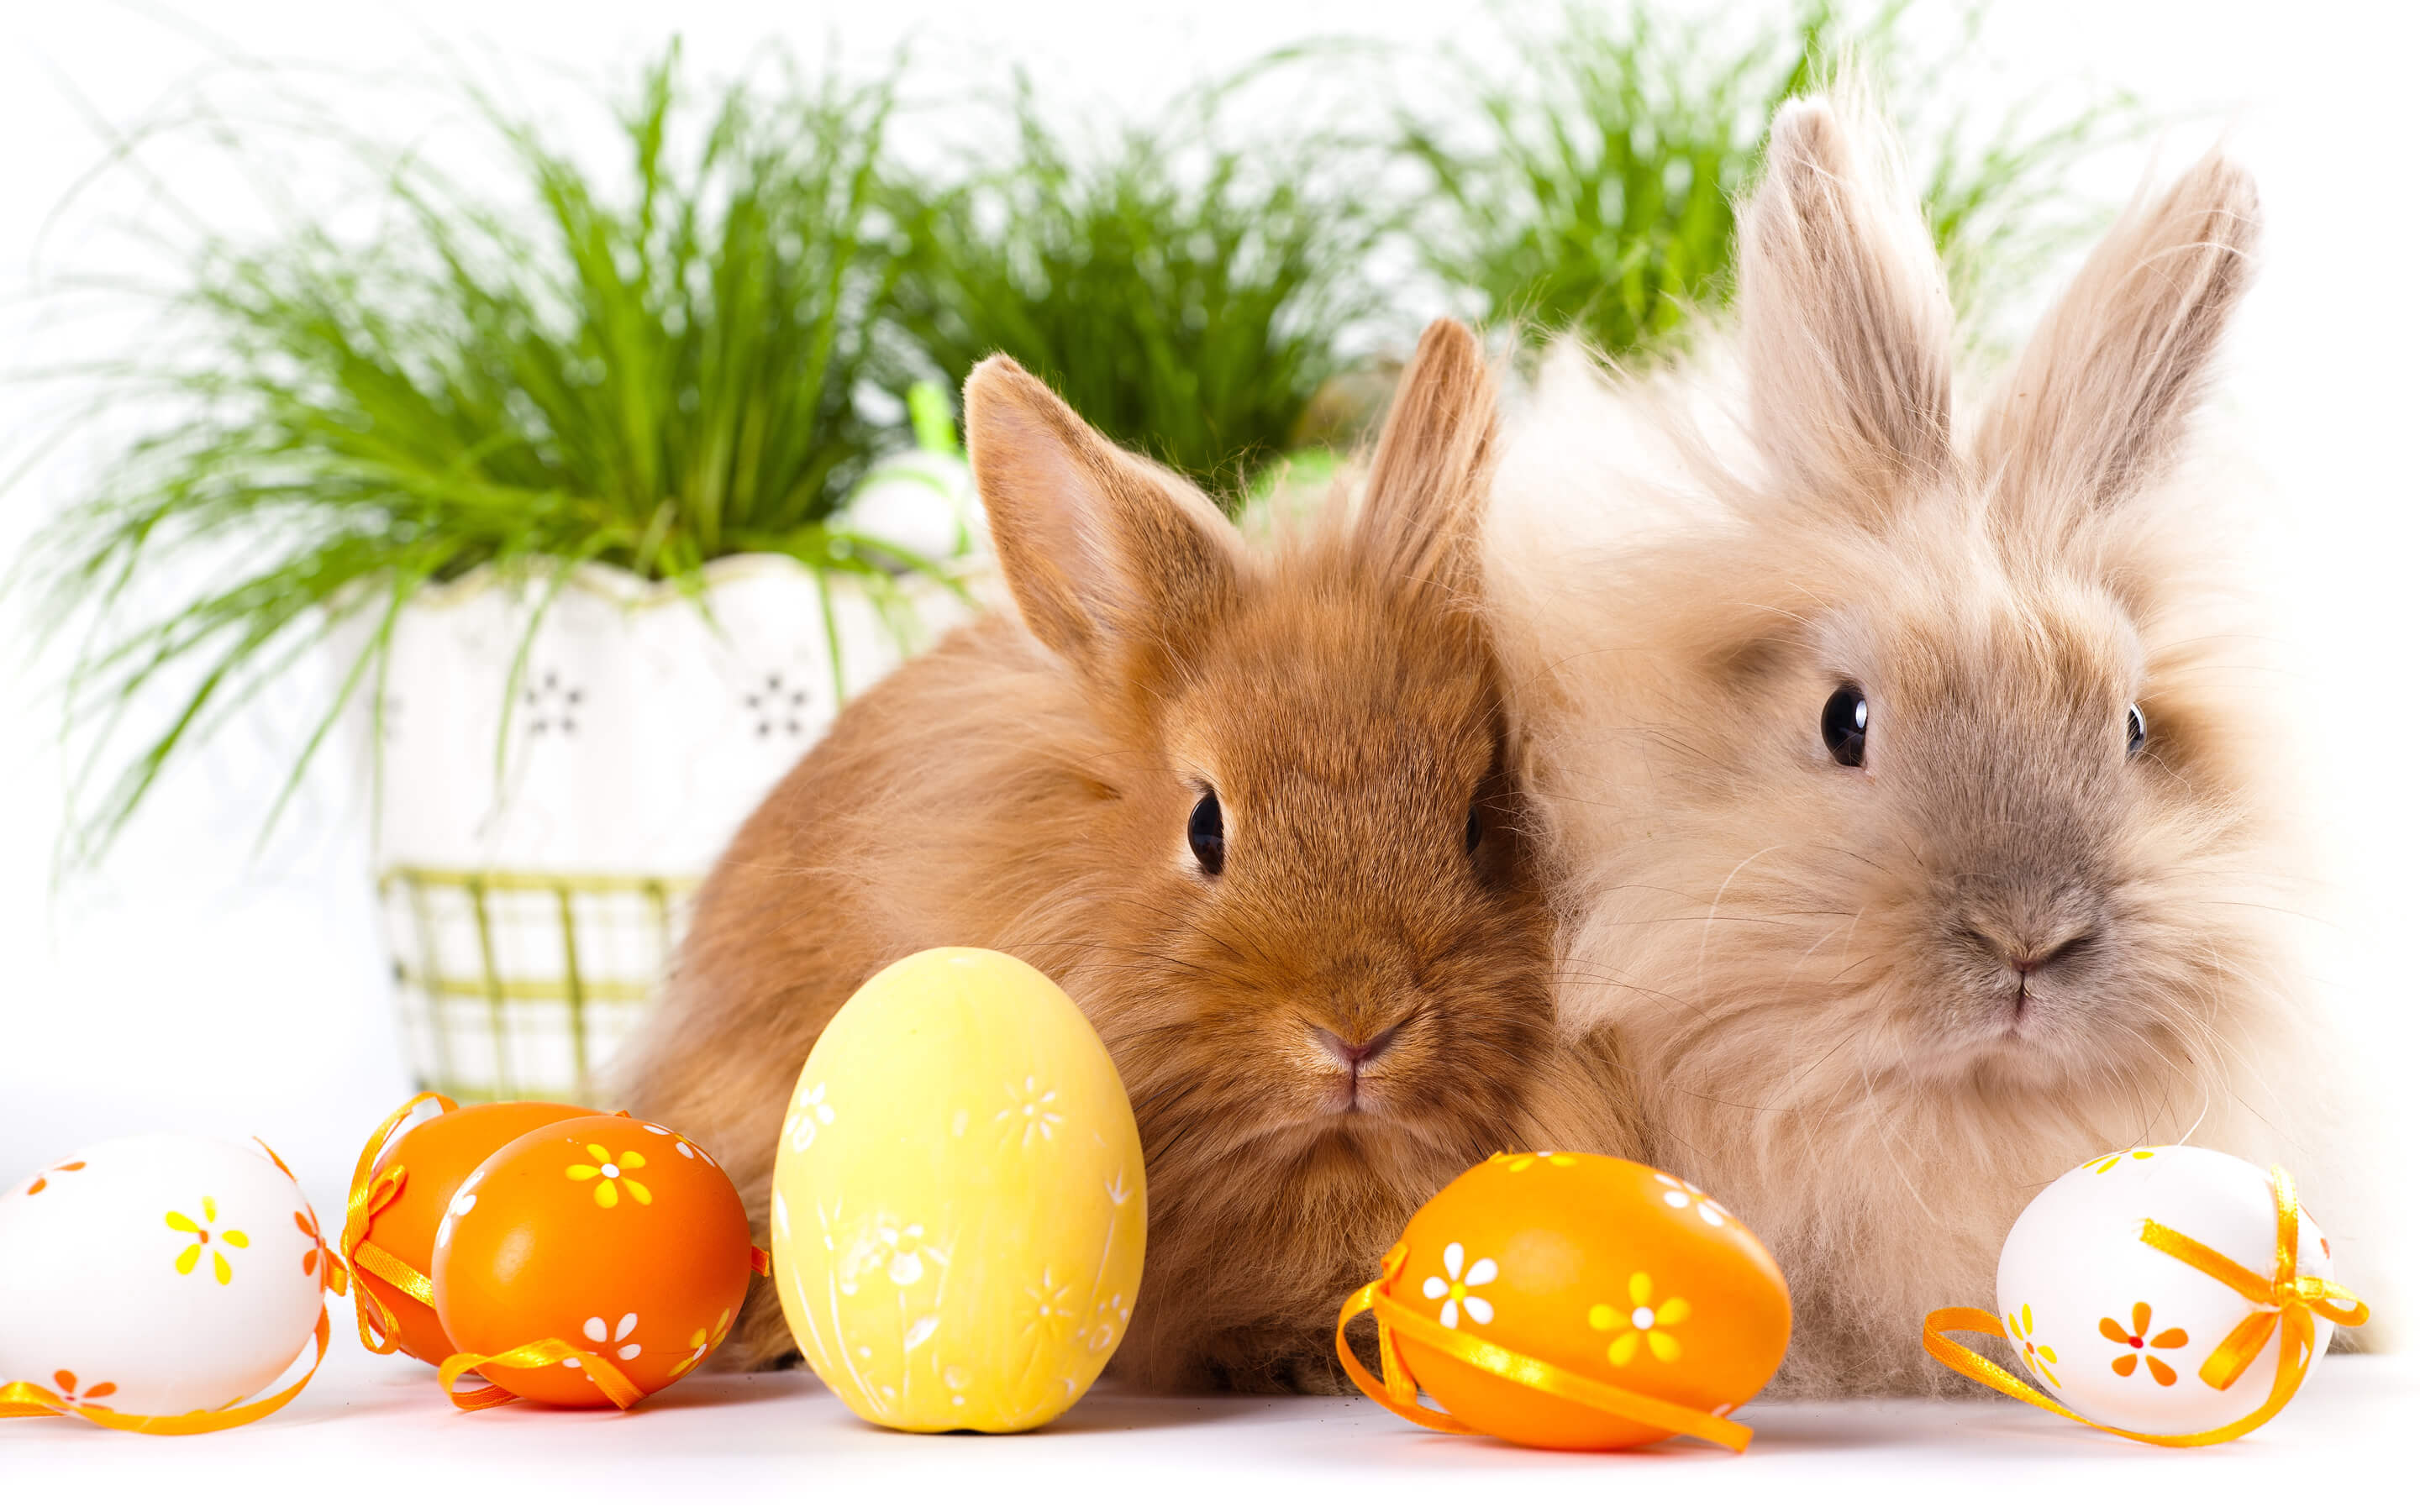 Easter Bunnies Free Hd Wallpaper Background